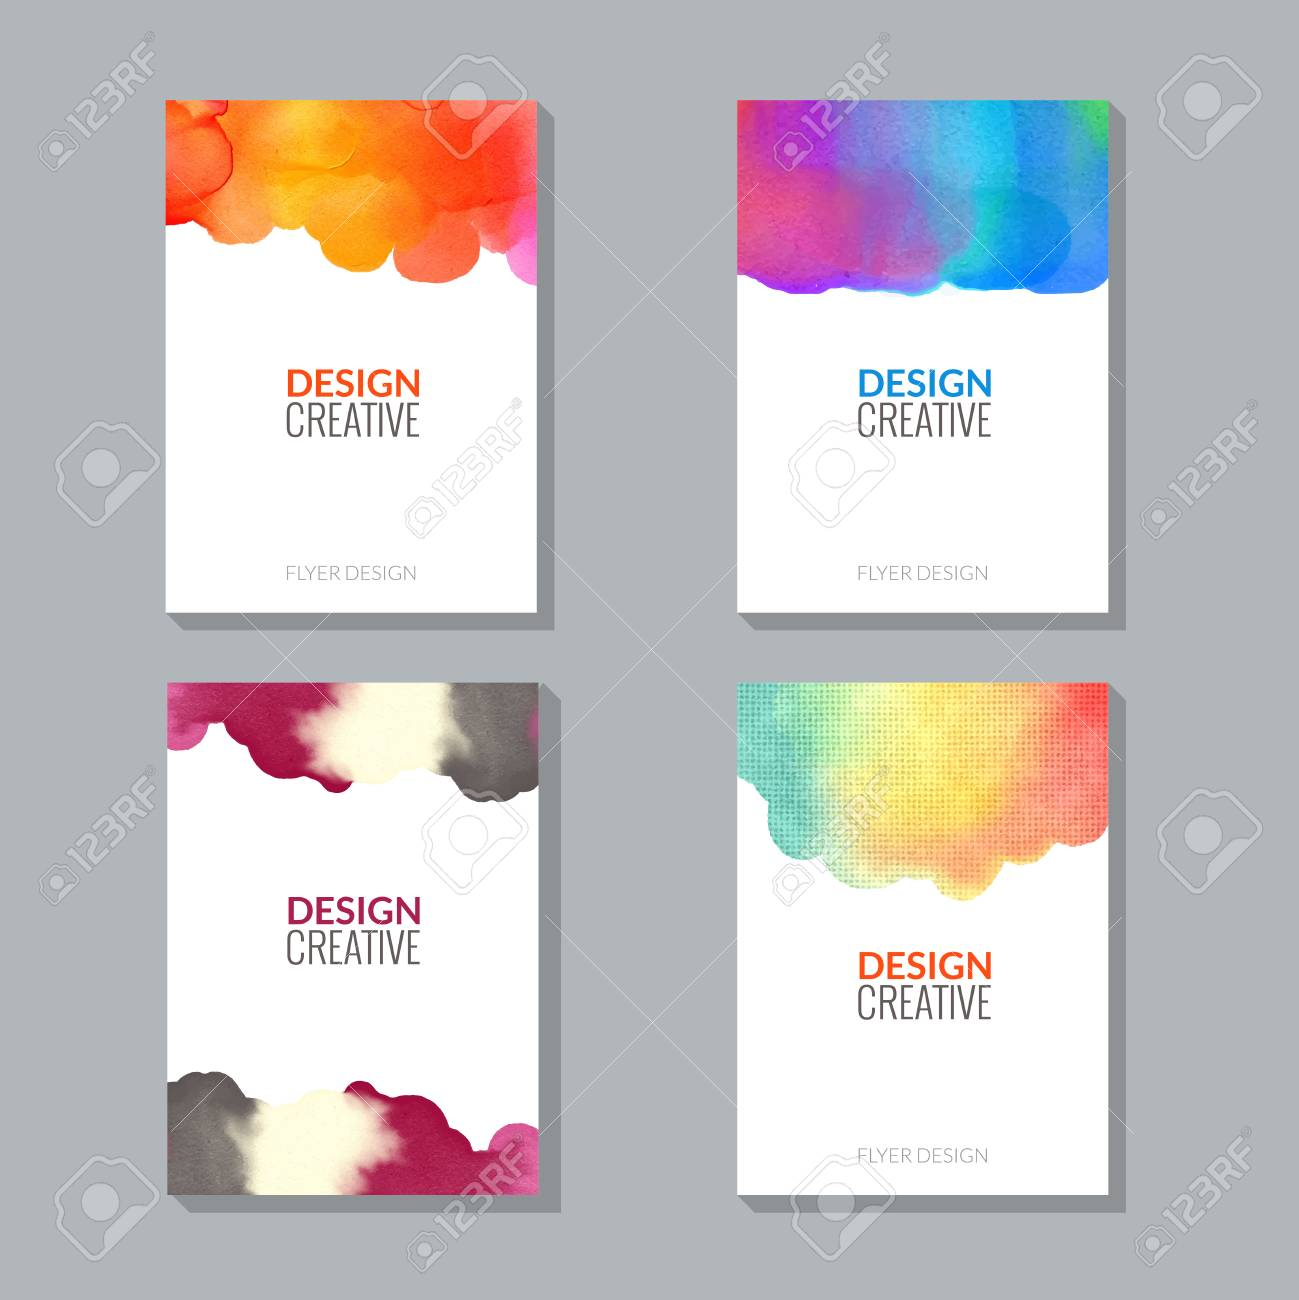 Vector Poster Flyer Templates With Watercolor Paint Splash Abstract